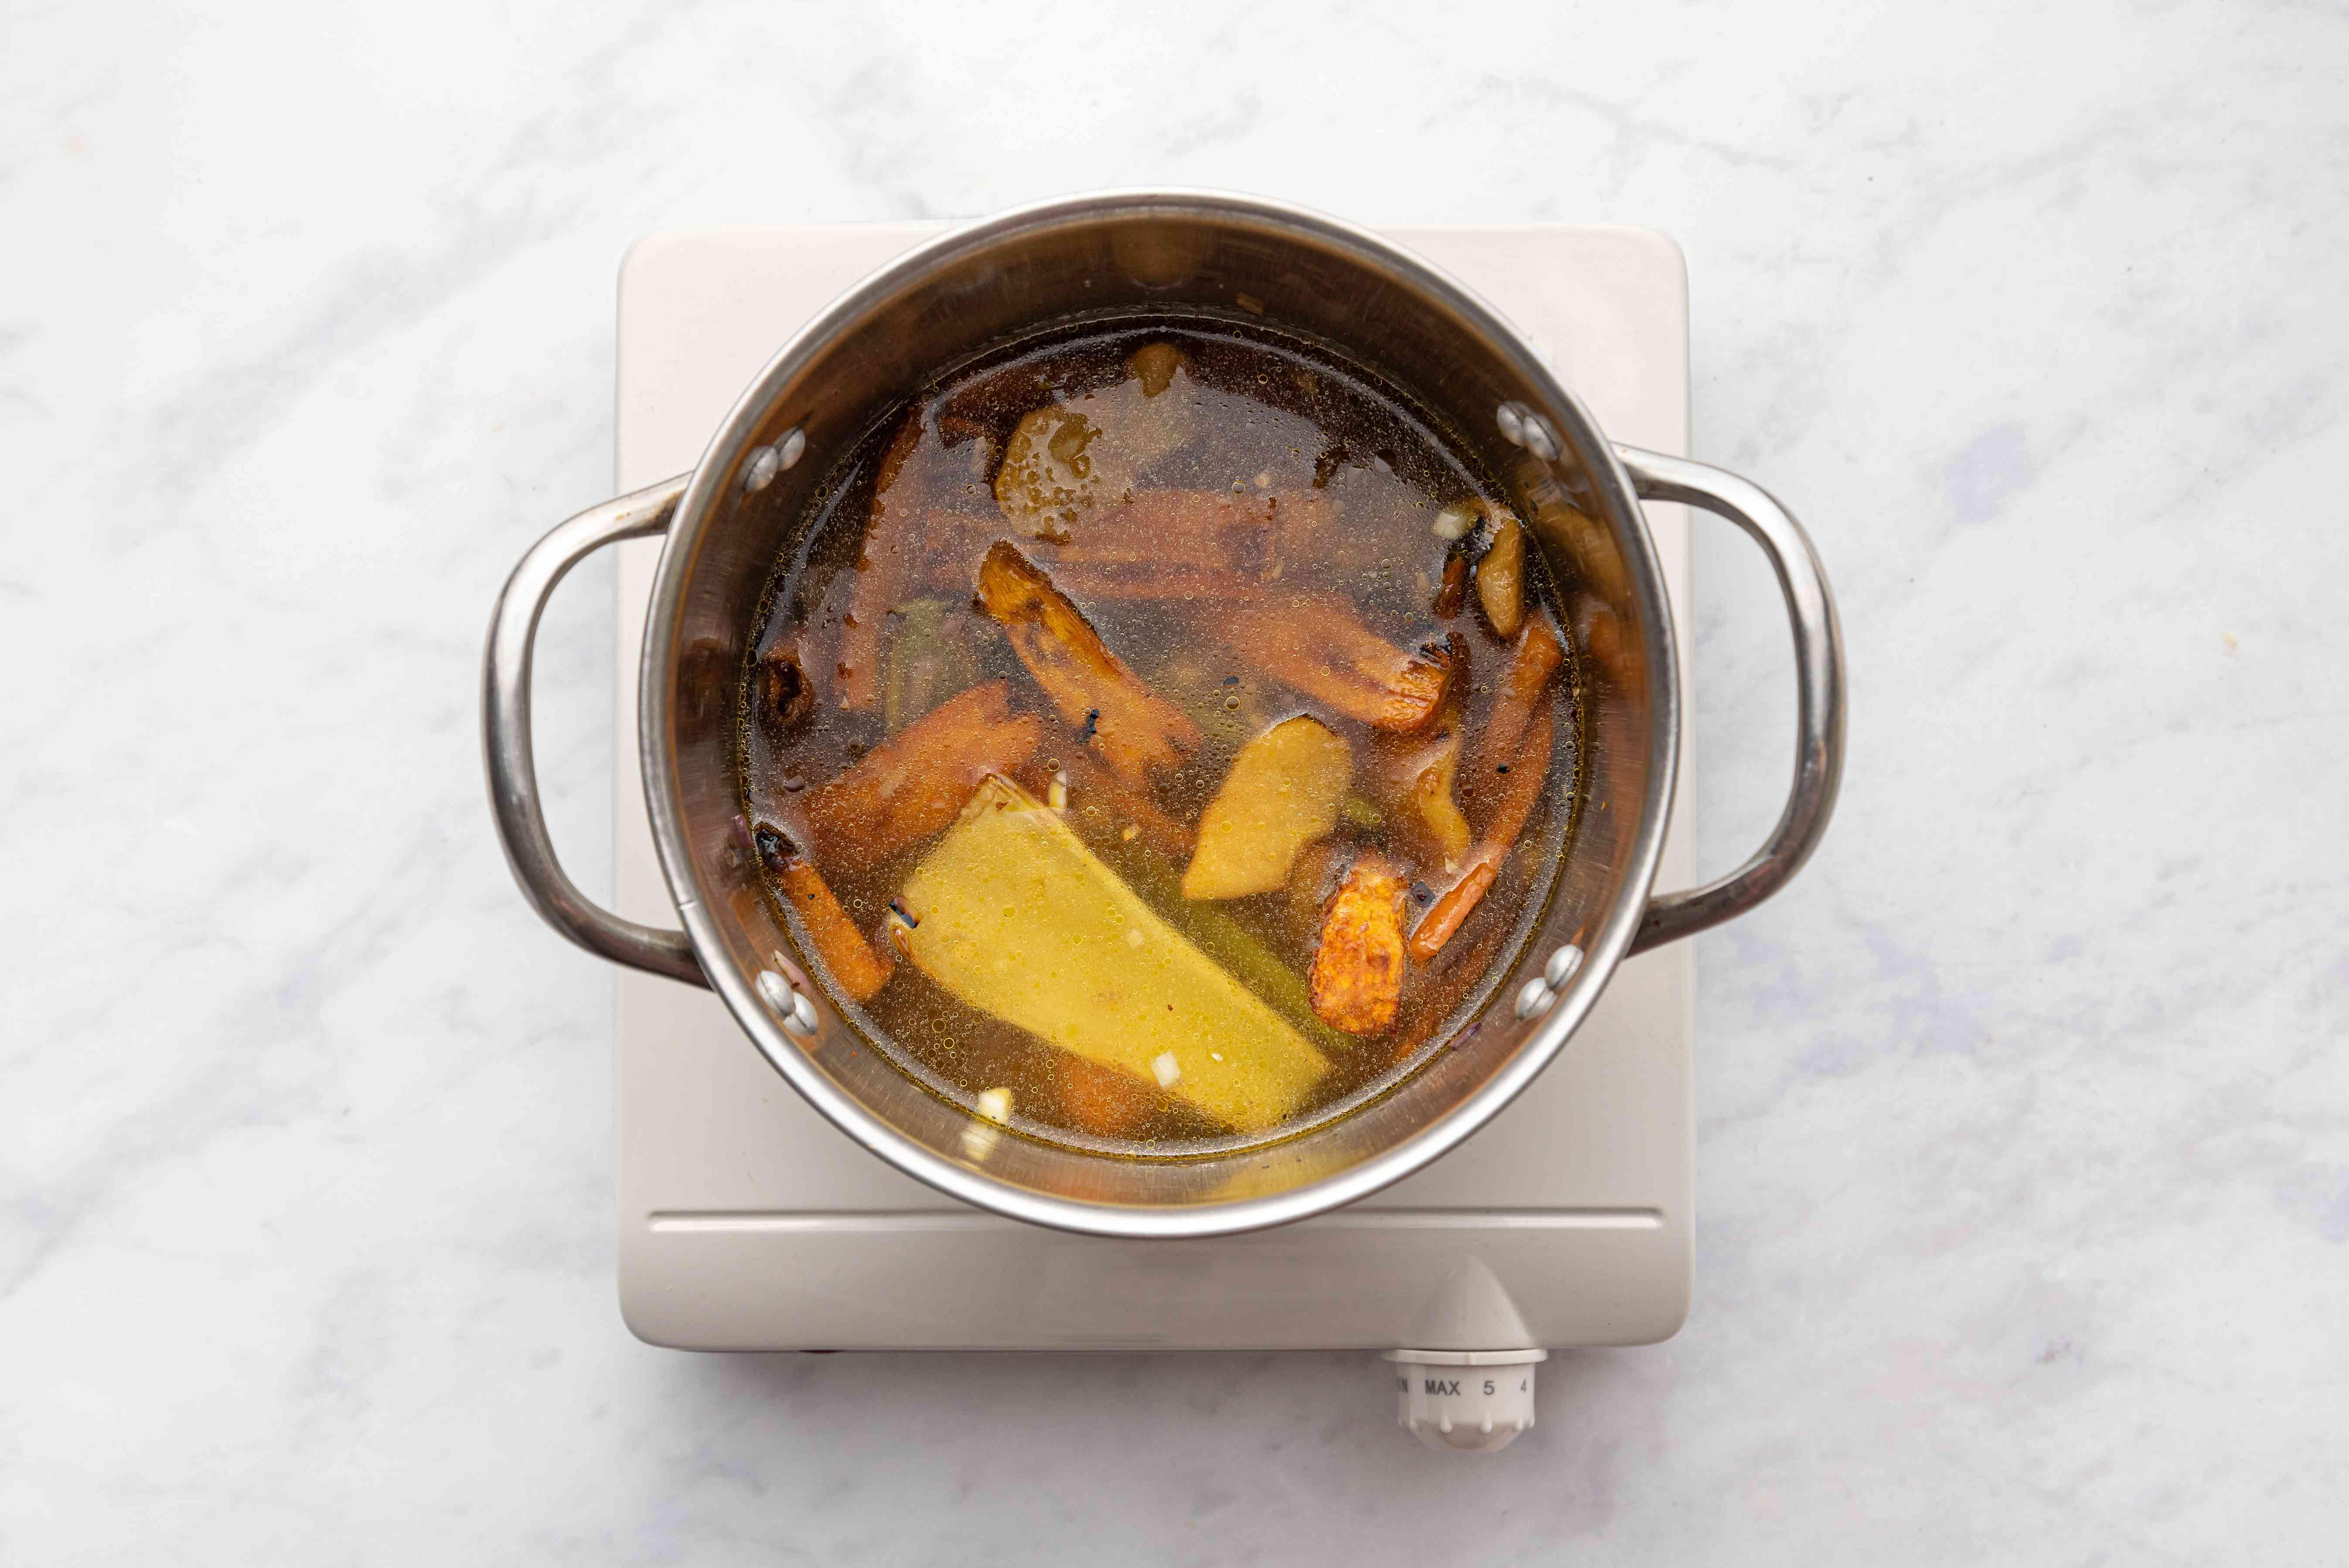 Roasted vegetables with stock in a pot